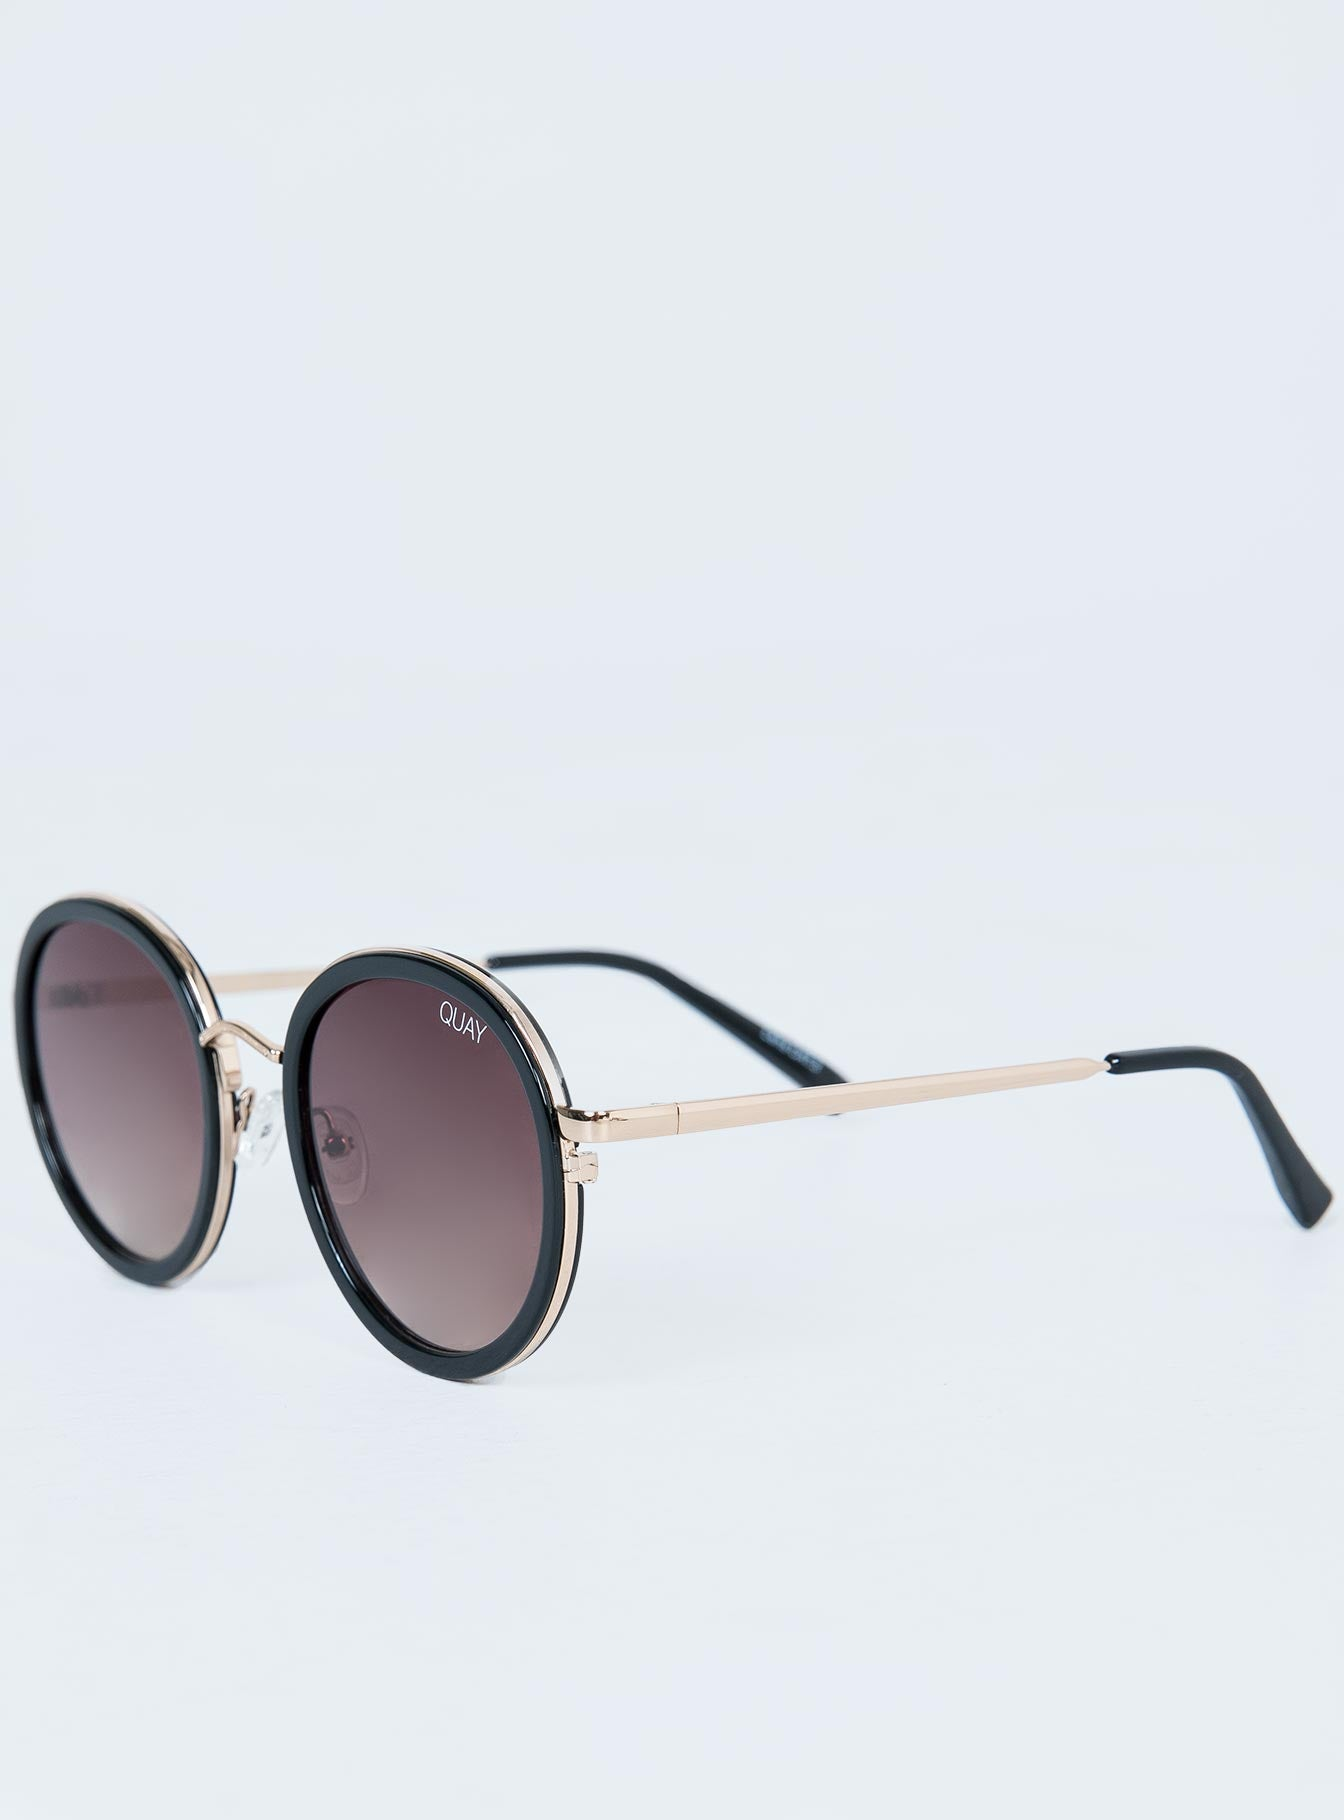 Quay Australia Firefly Sunglasses Black / Brown